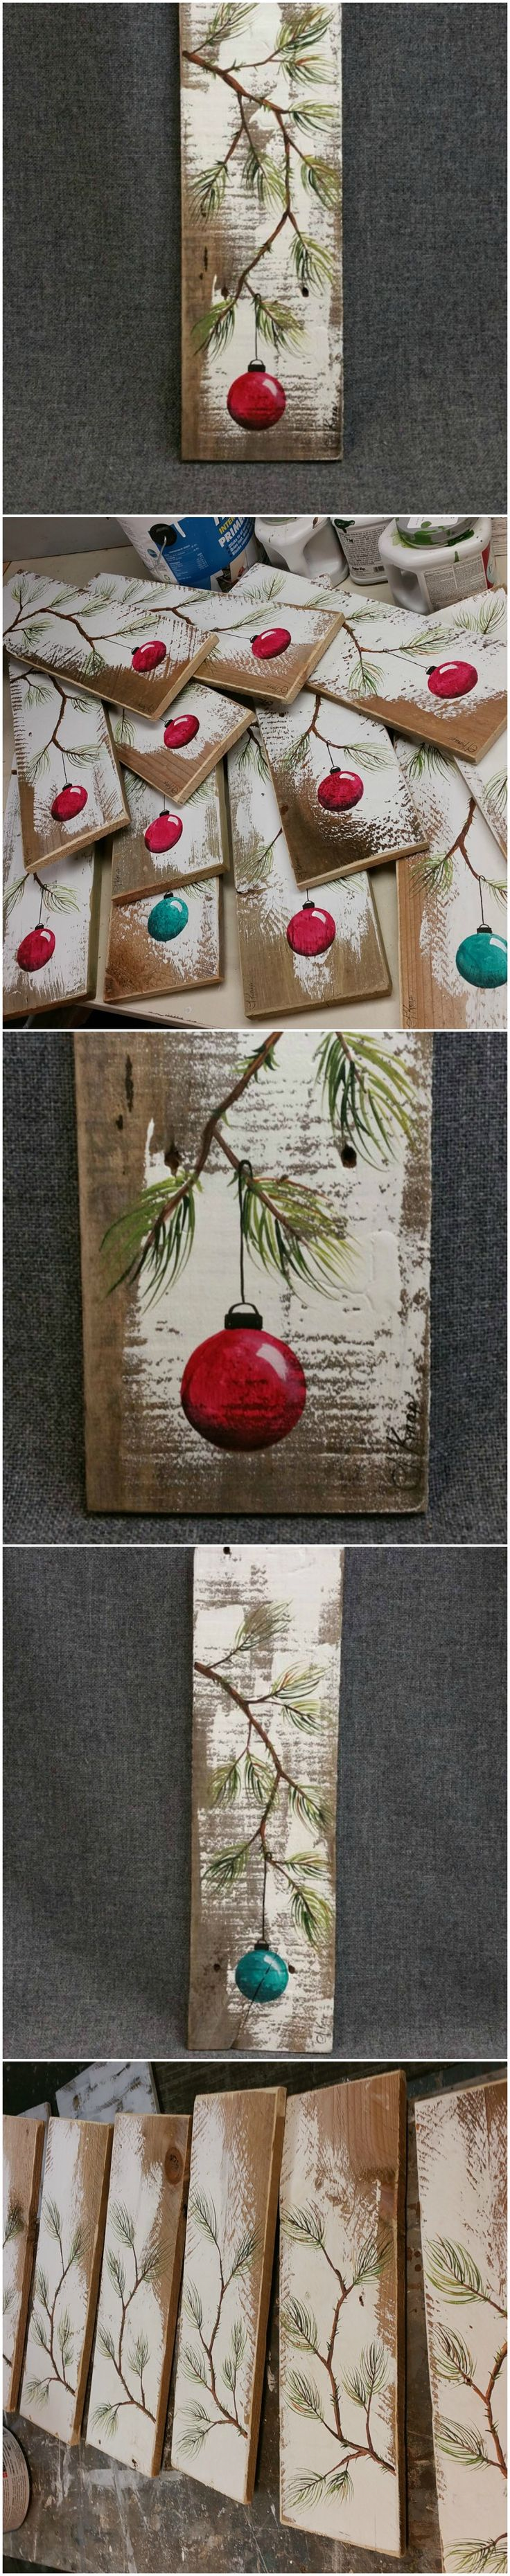 "RED Hand painted Christmas decoration, GIFTS UNDER 25, Pine Branch with Red Bulb, Reclaimed barnwood, Pallet art, Shabby chic Original Acrylic painting on reclaimed barnwood boards. This unique piece is appx. 17"" tall by 5 1/4"" wide. It is a fun, personal touch to add to your Christmas decor or a great gift for teachers. The CHRISTMAS bulb can be ordered in any color!!"